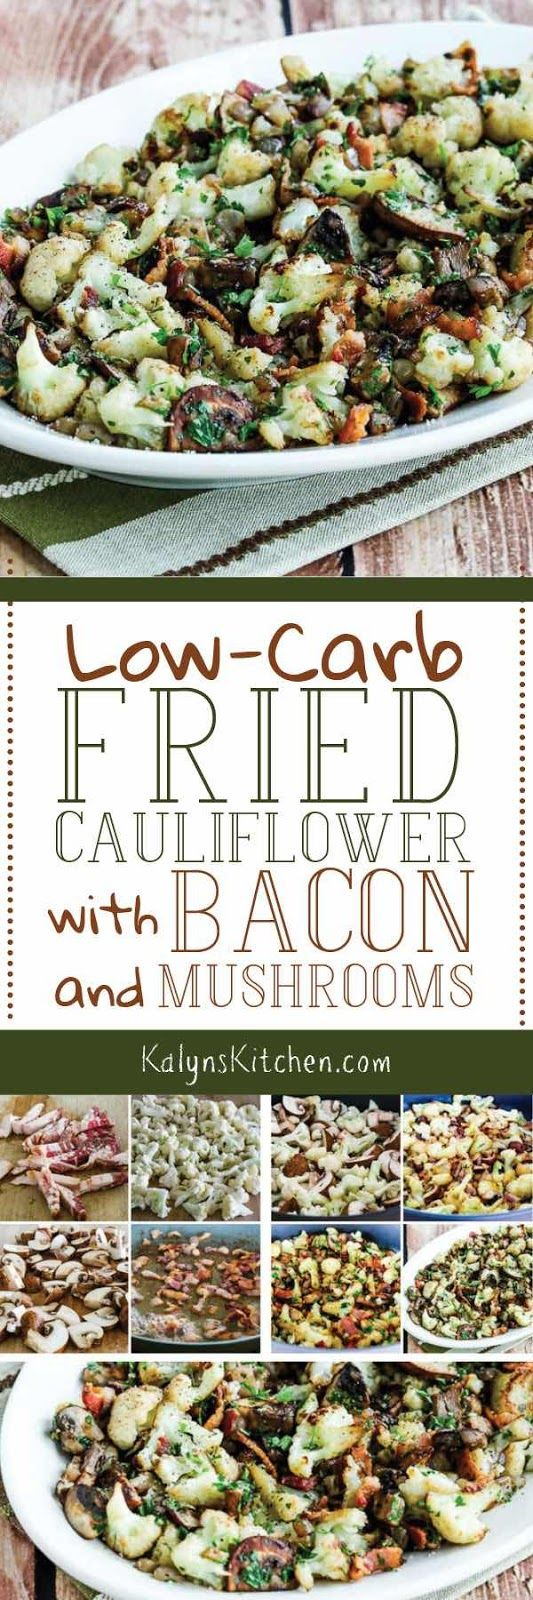 Fried Cauliflower with Bacon and Mushrooms